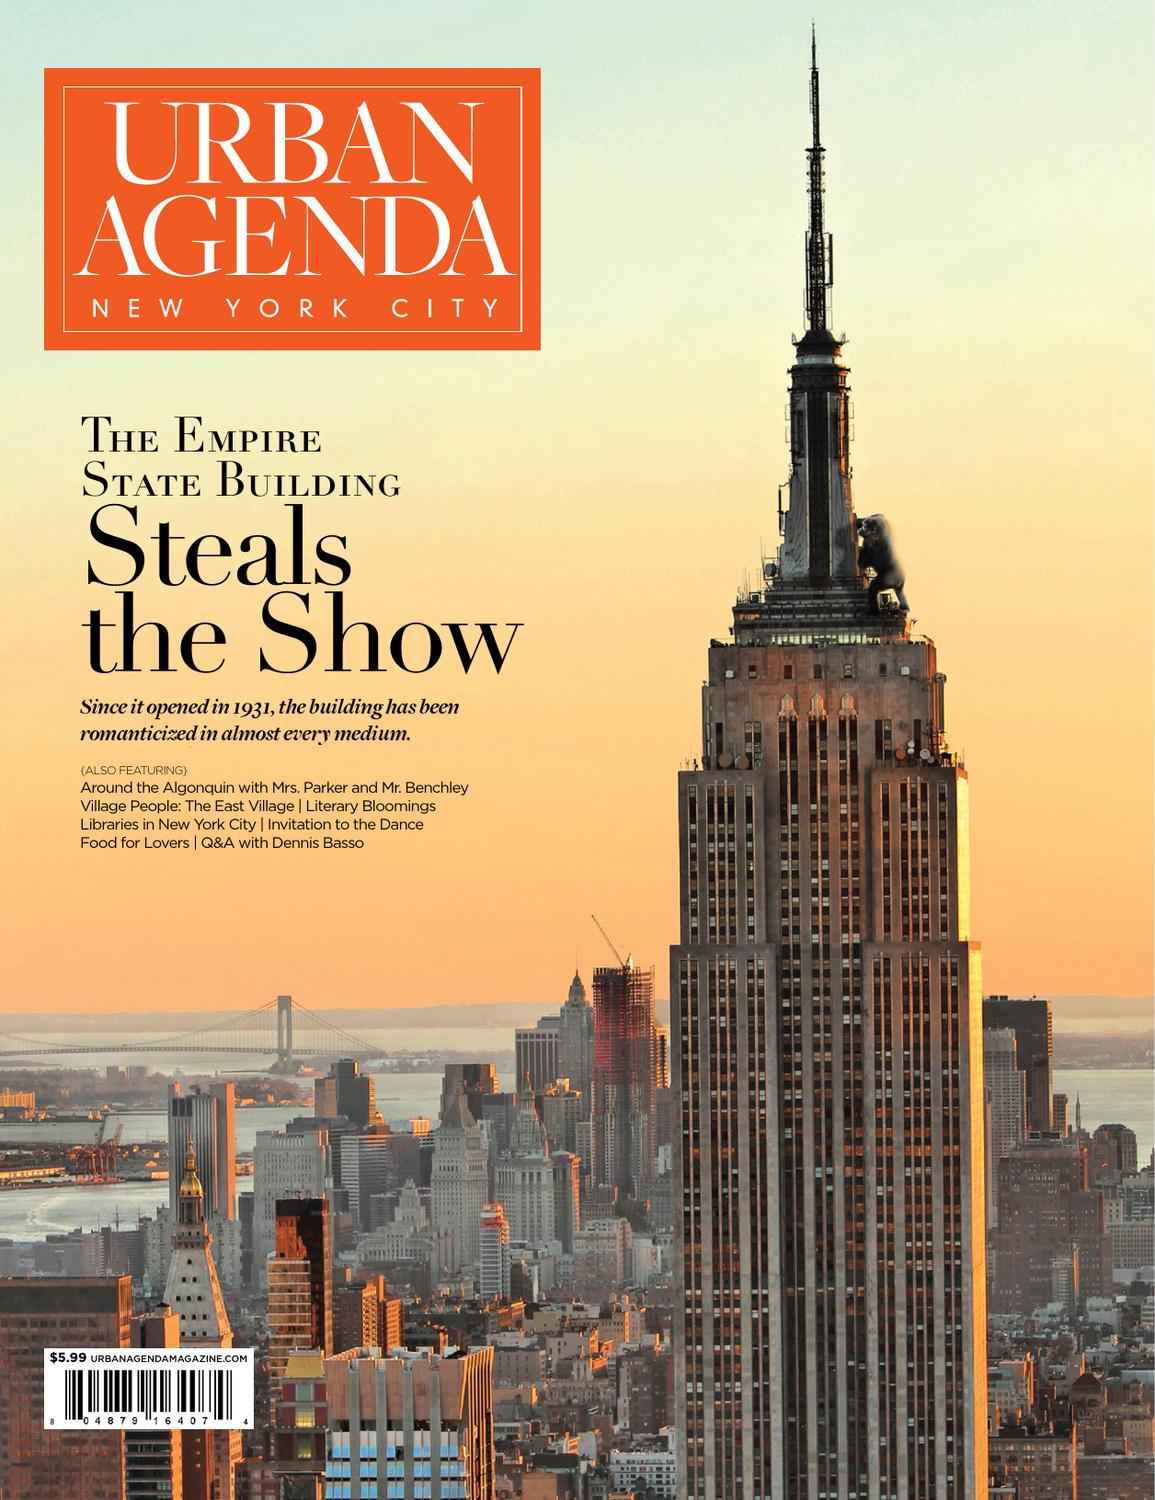 Urban Agenda New York City By Witherspoon Media Group Issuu Lustybunny Baby Shoes Round Spots 21 Cokelat Tua